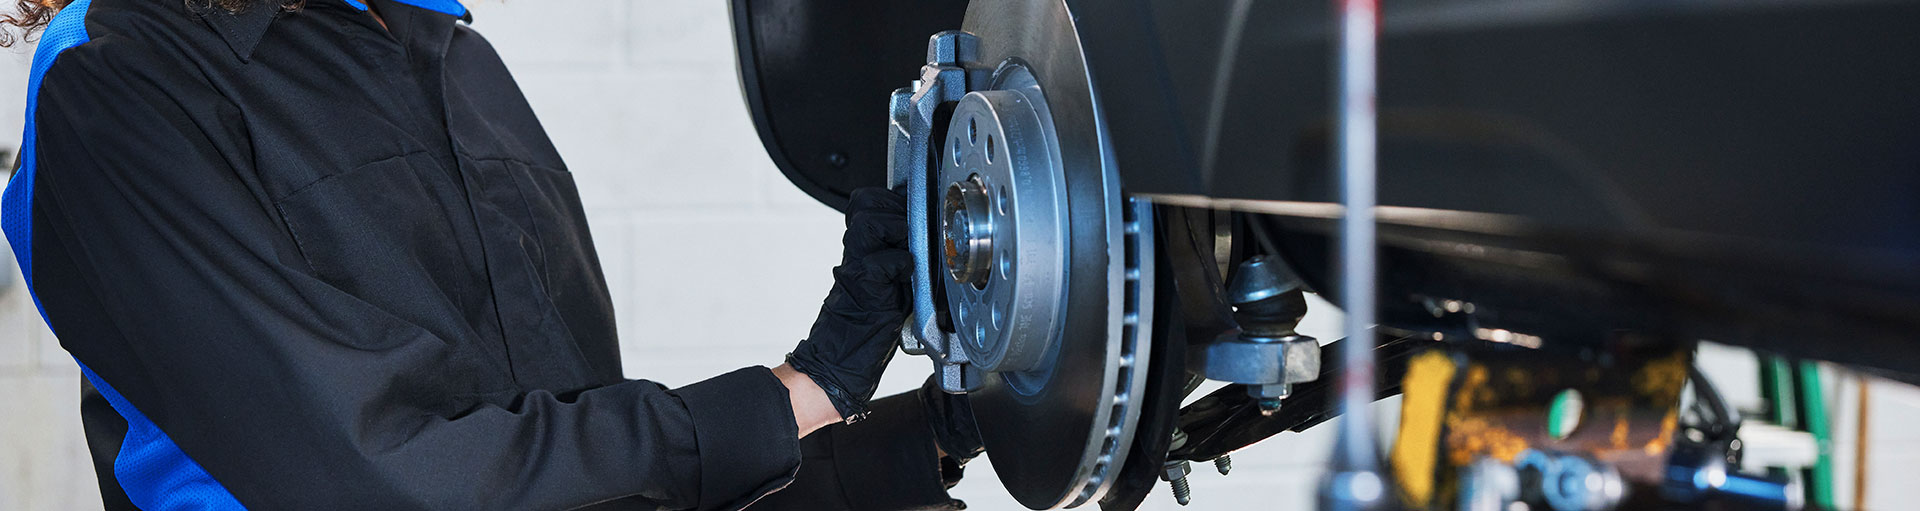 Luther Westside Volkswagen Brake Services